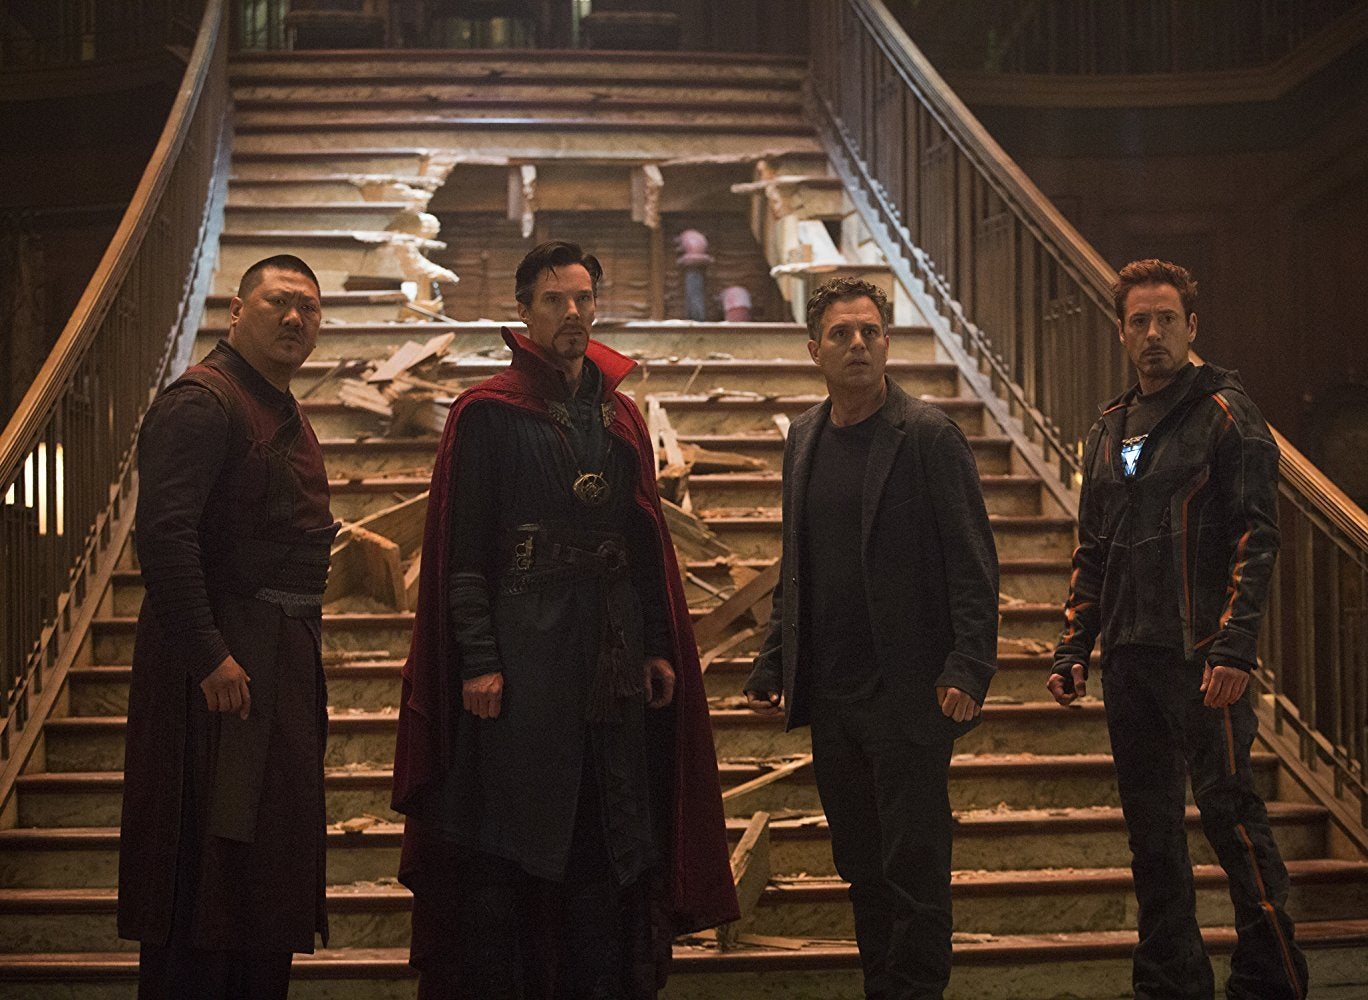 Benedict Wong, Benedict Cumberbatch, Mark Ruffalo, and Robert Downey Jr.